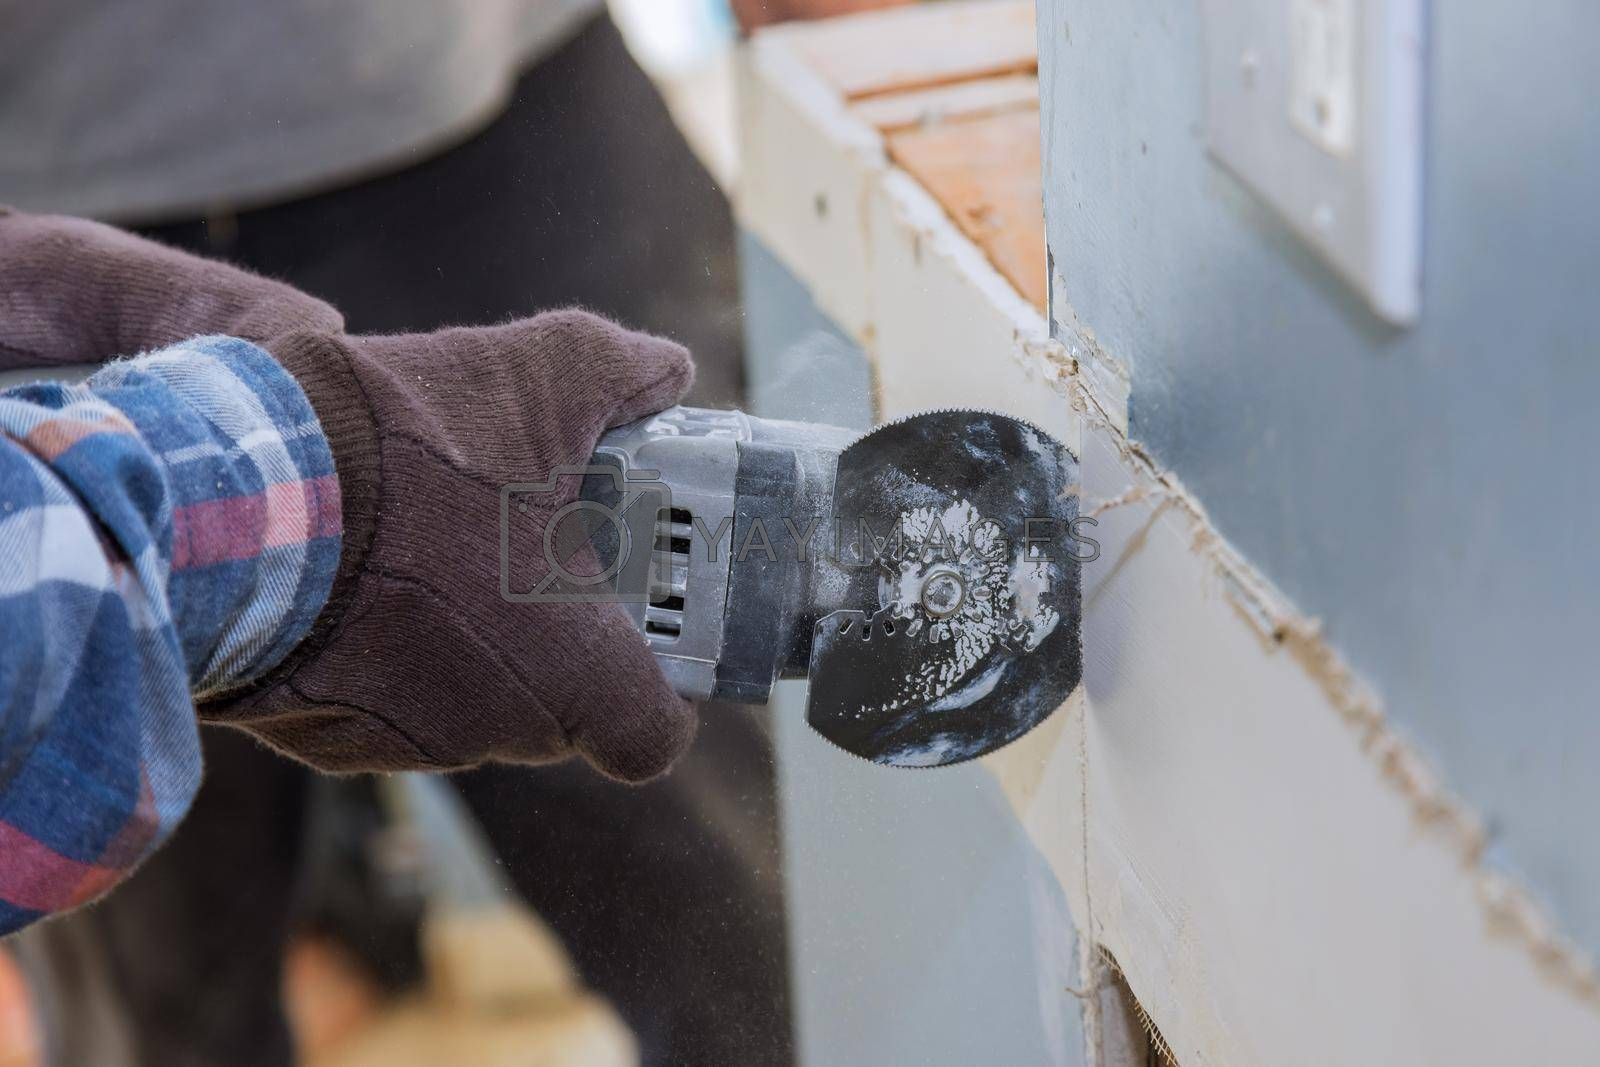 Maintenance repair works home remodel of replacement damaged drywall on man is cutting gypsum board with utility hand electric power tools